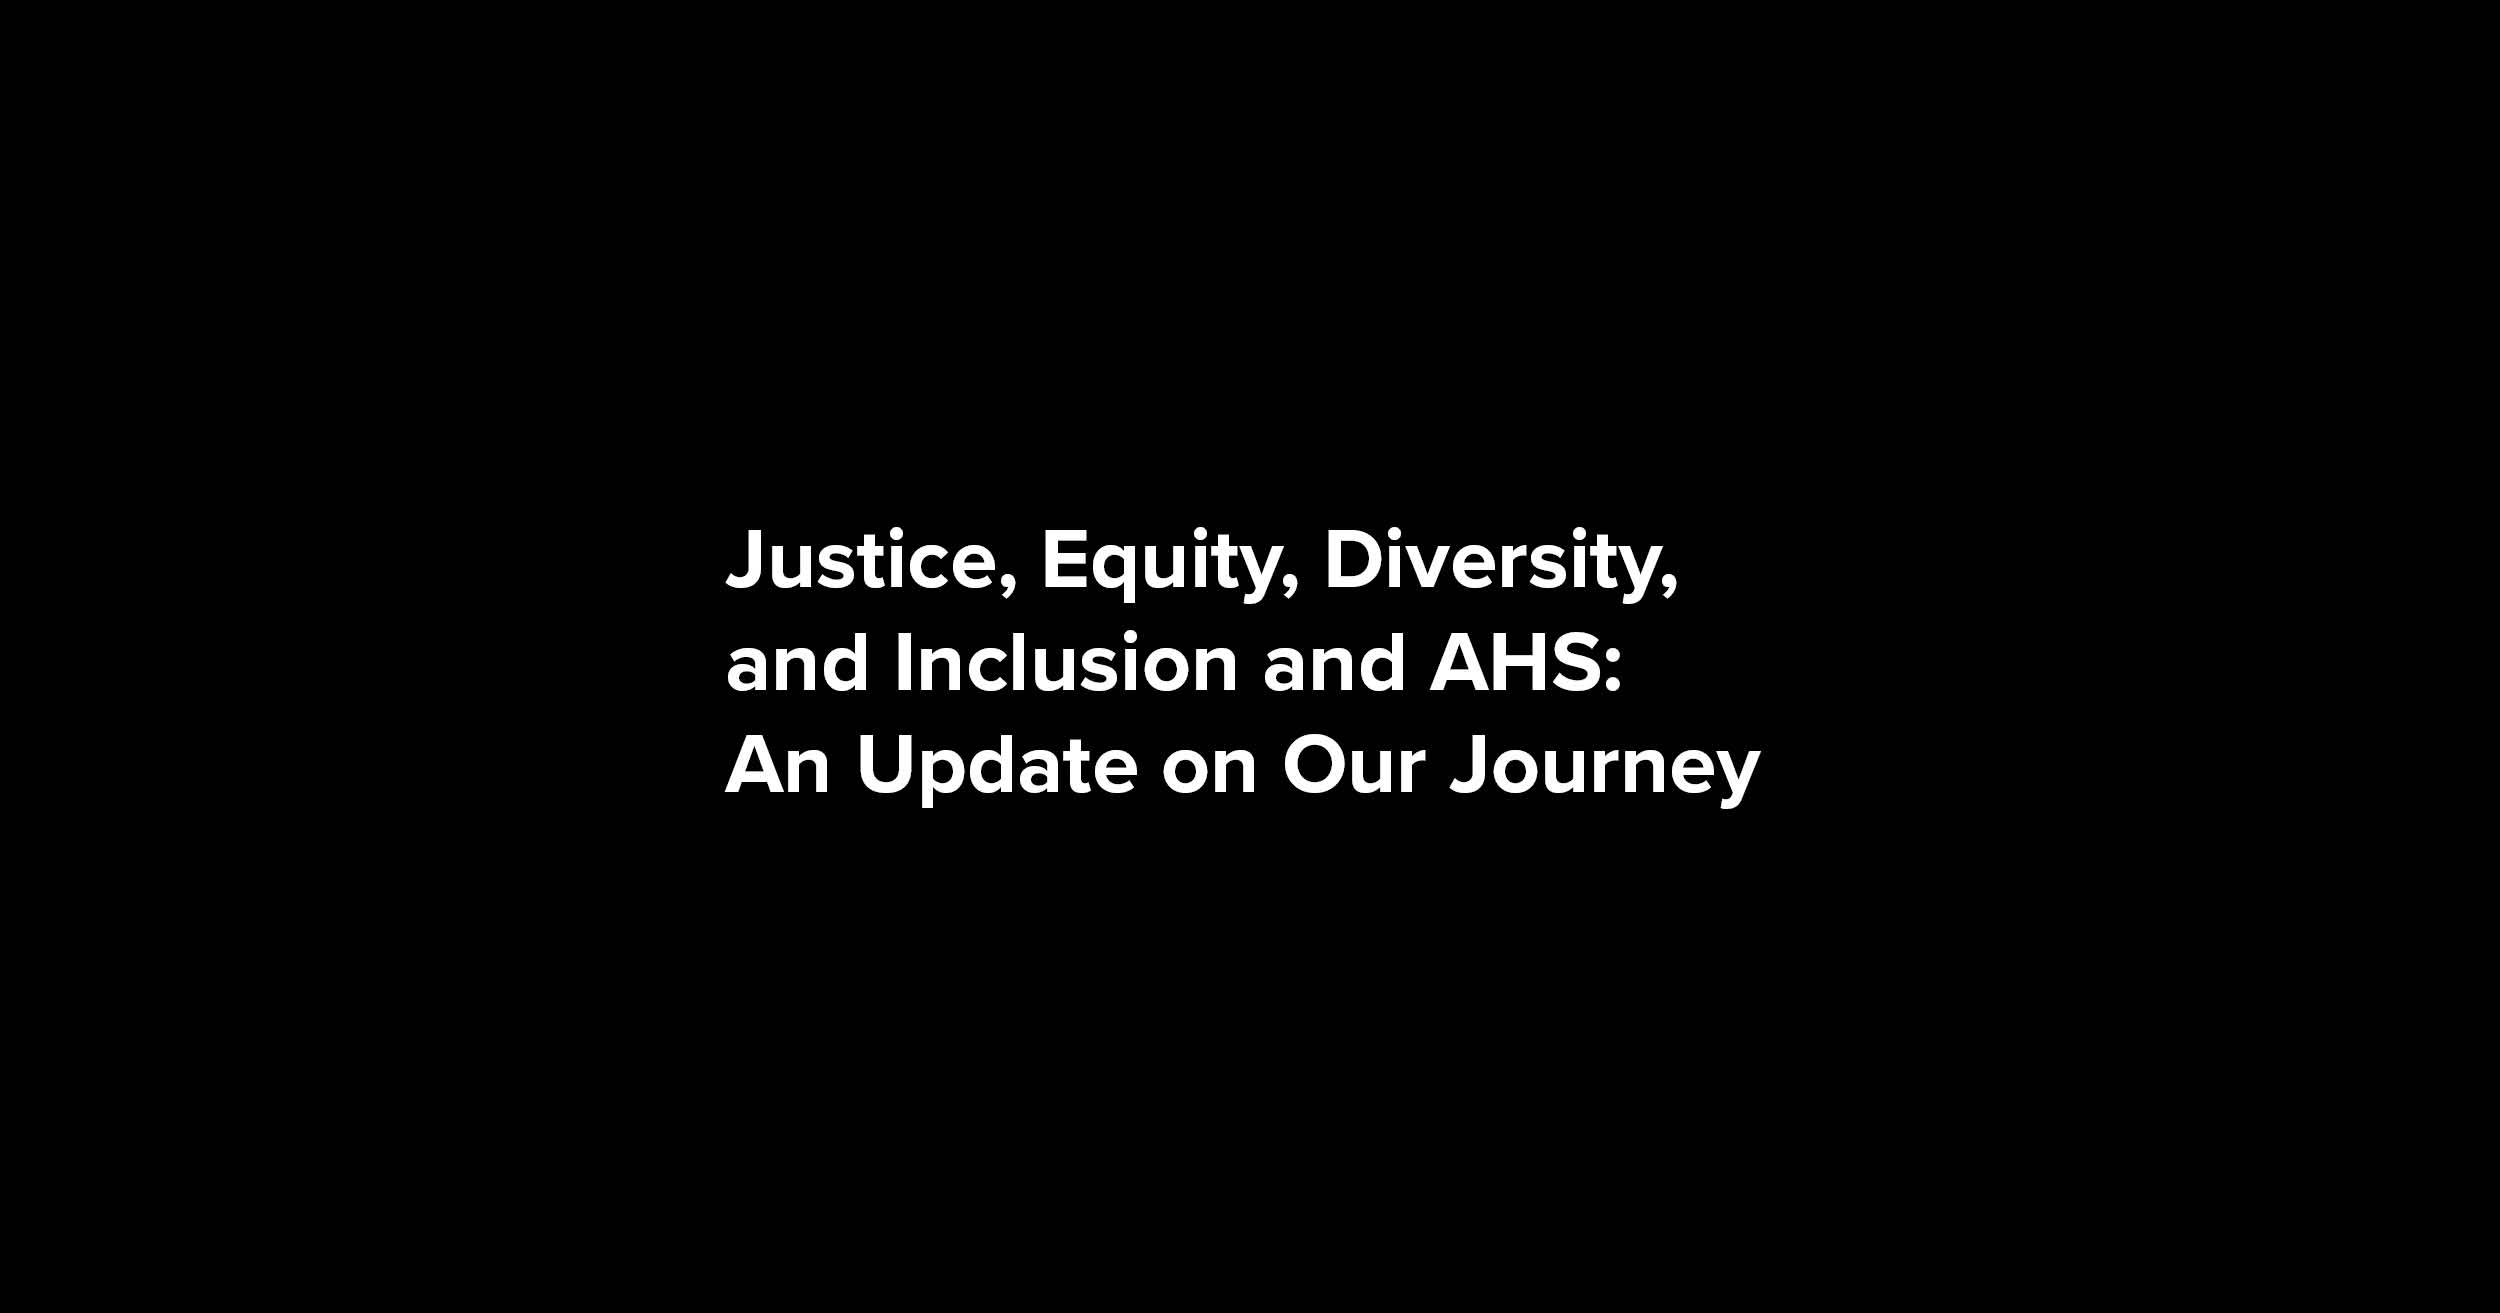 Justice, Equity, Diversity, and Inclusion and AHS: Update on Our Journey